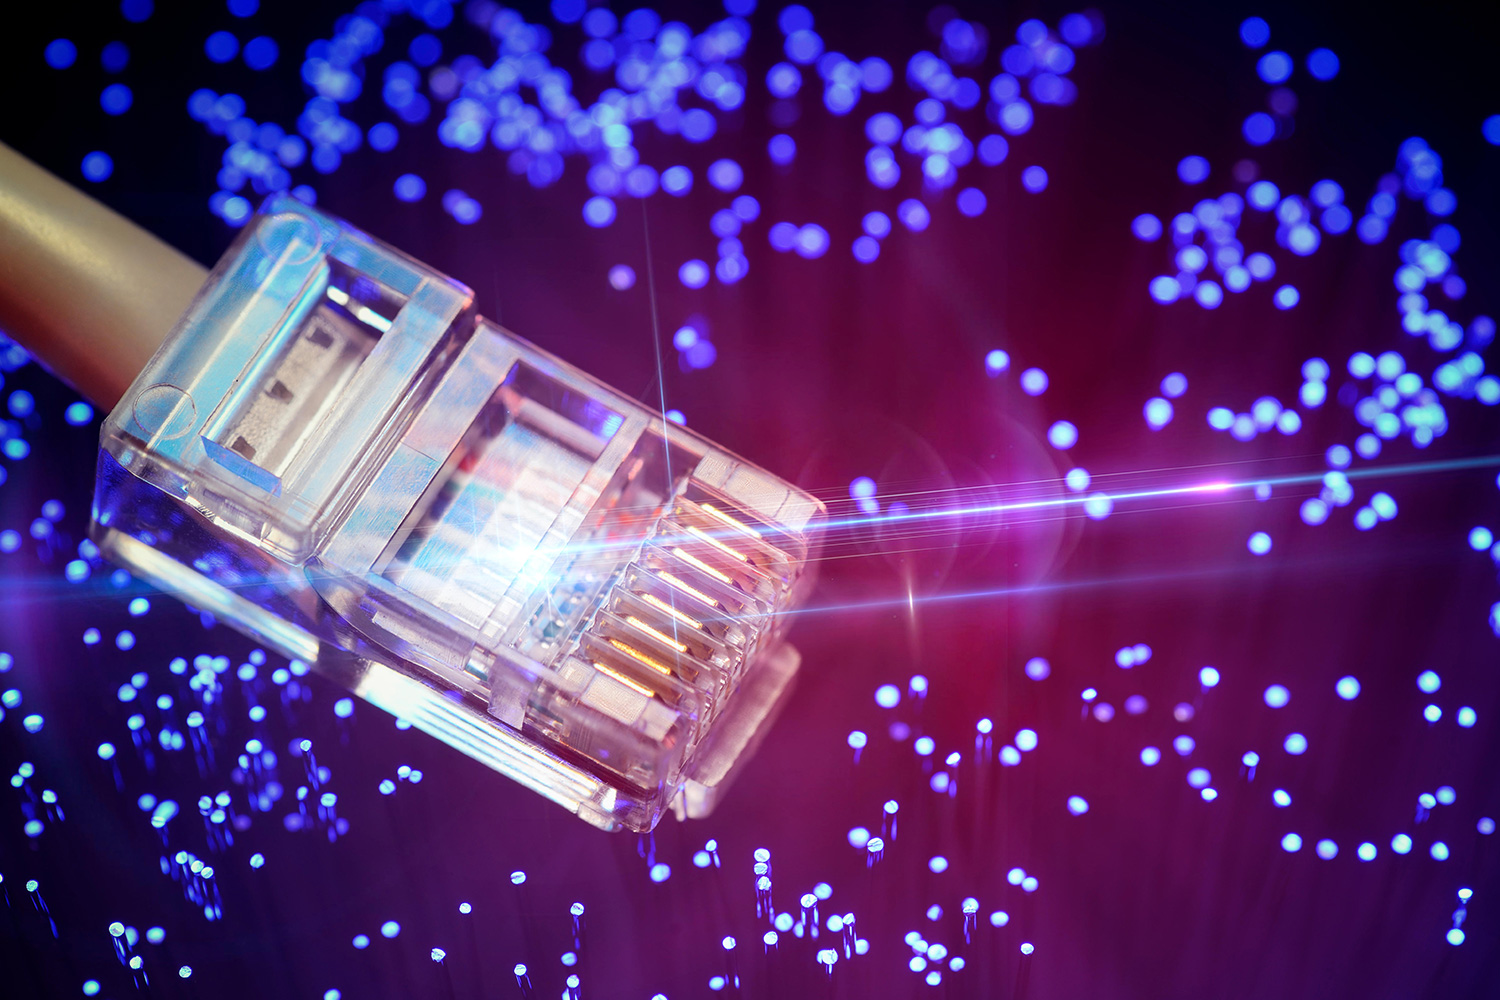 You can save up to £100 on your broadband